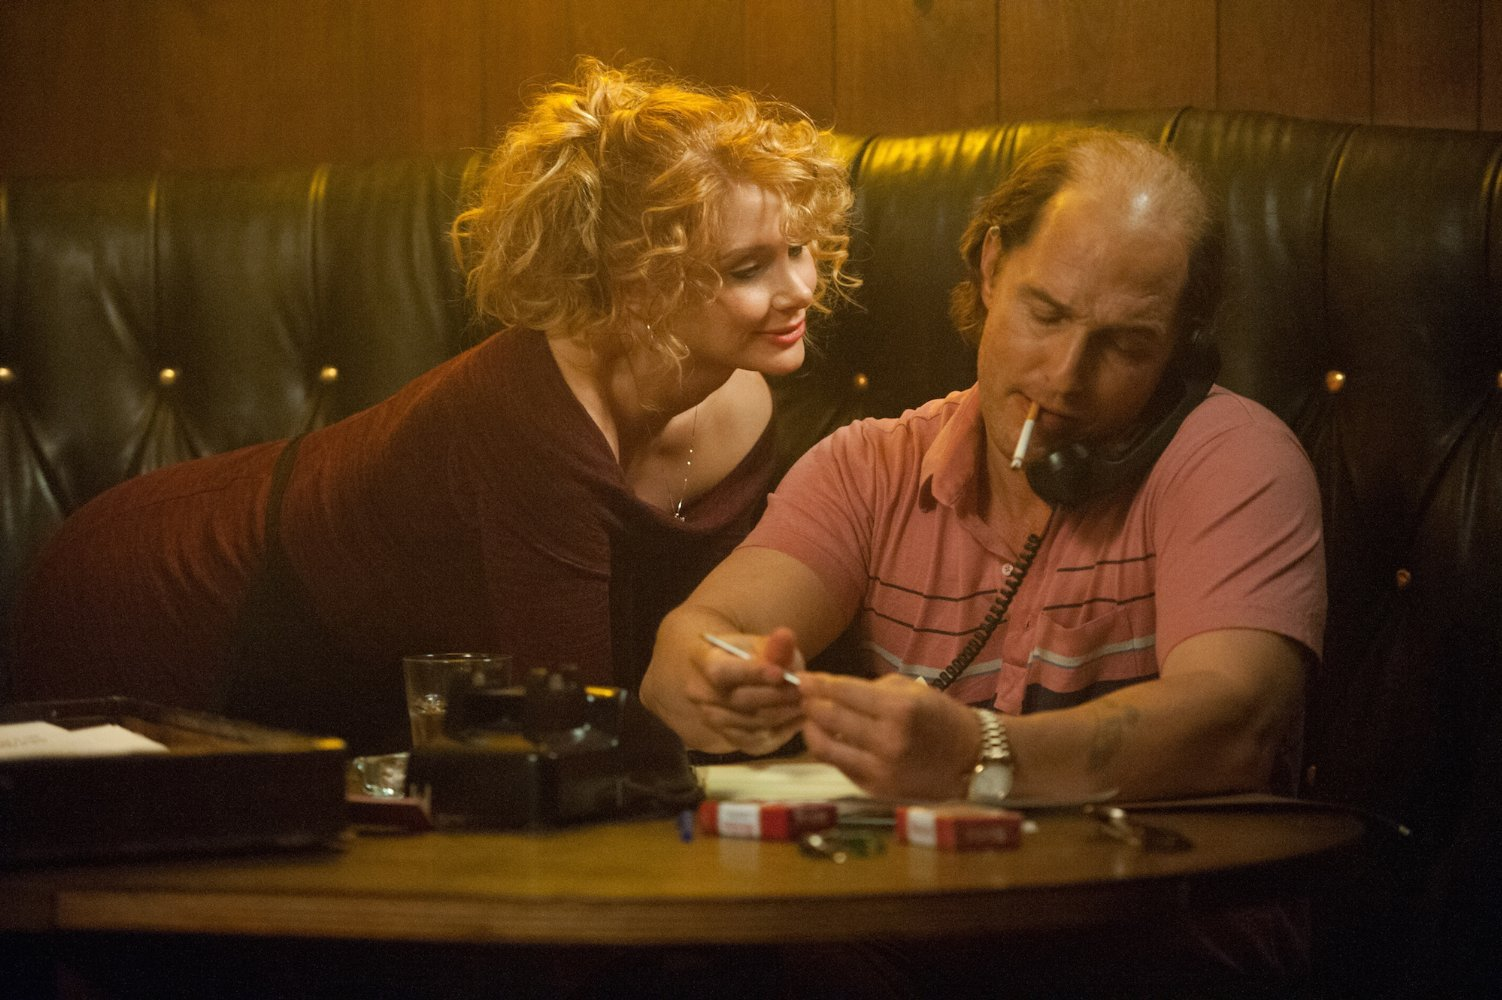 Bryce Dallas Howard glad Matthew McConaughey was heavier and balding in new movie – as it made her more confident